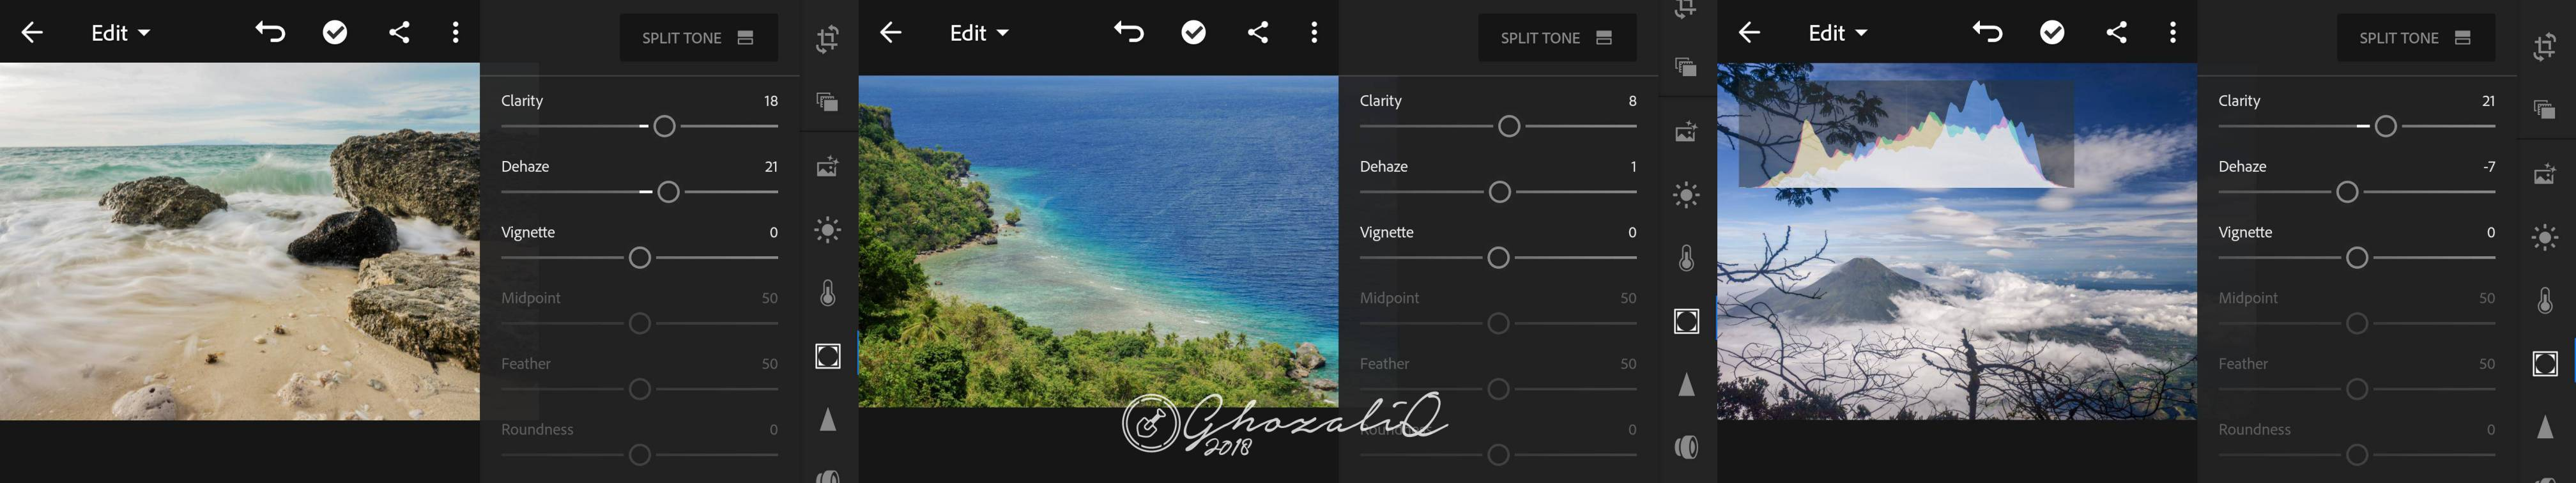 Edit foto landscape di lightroom android